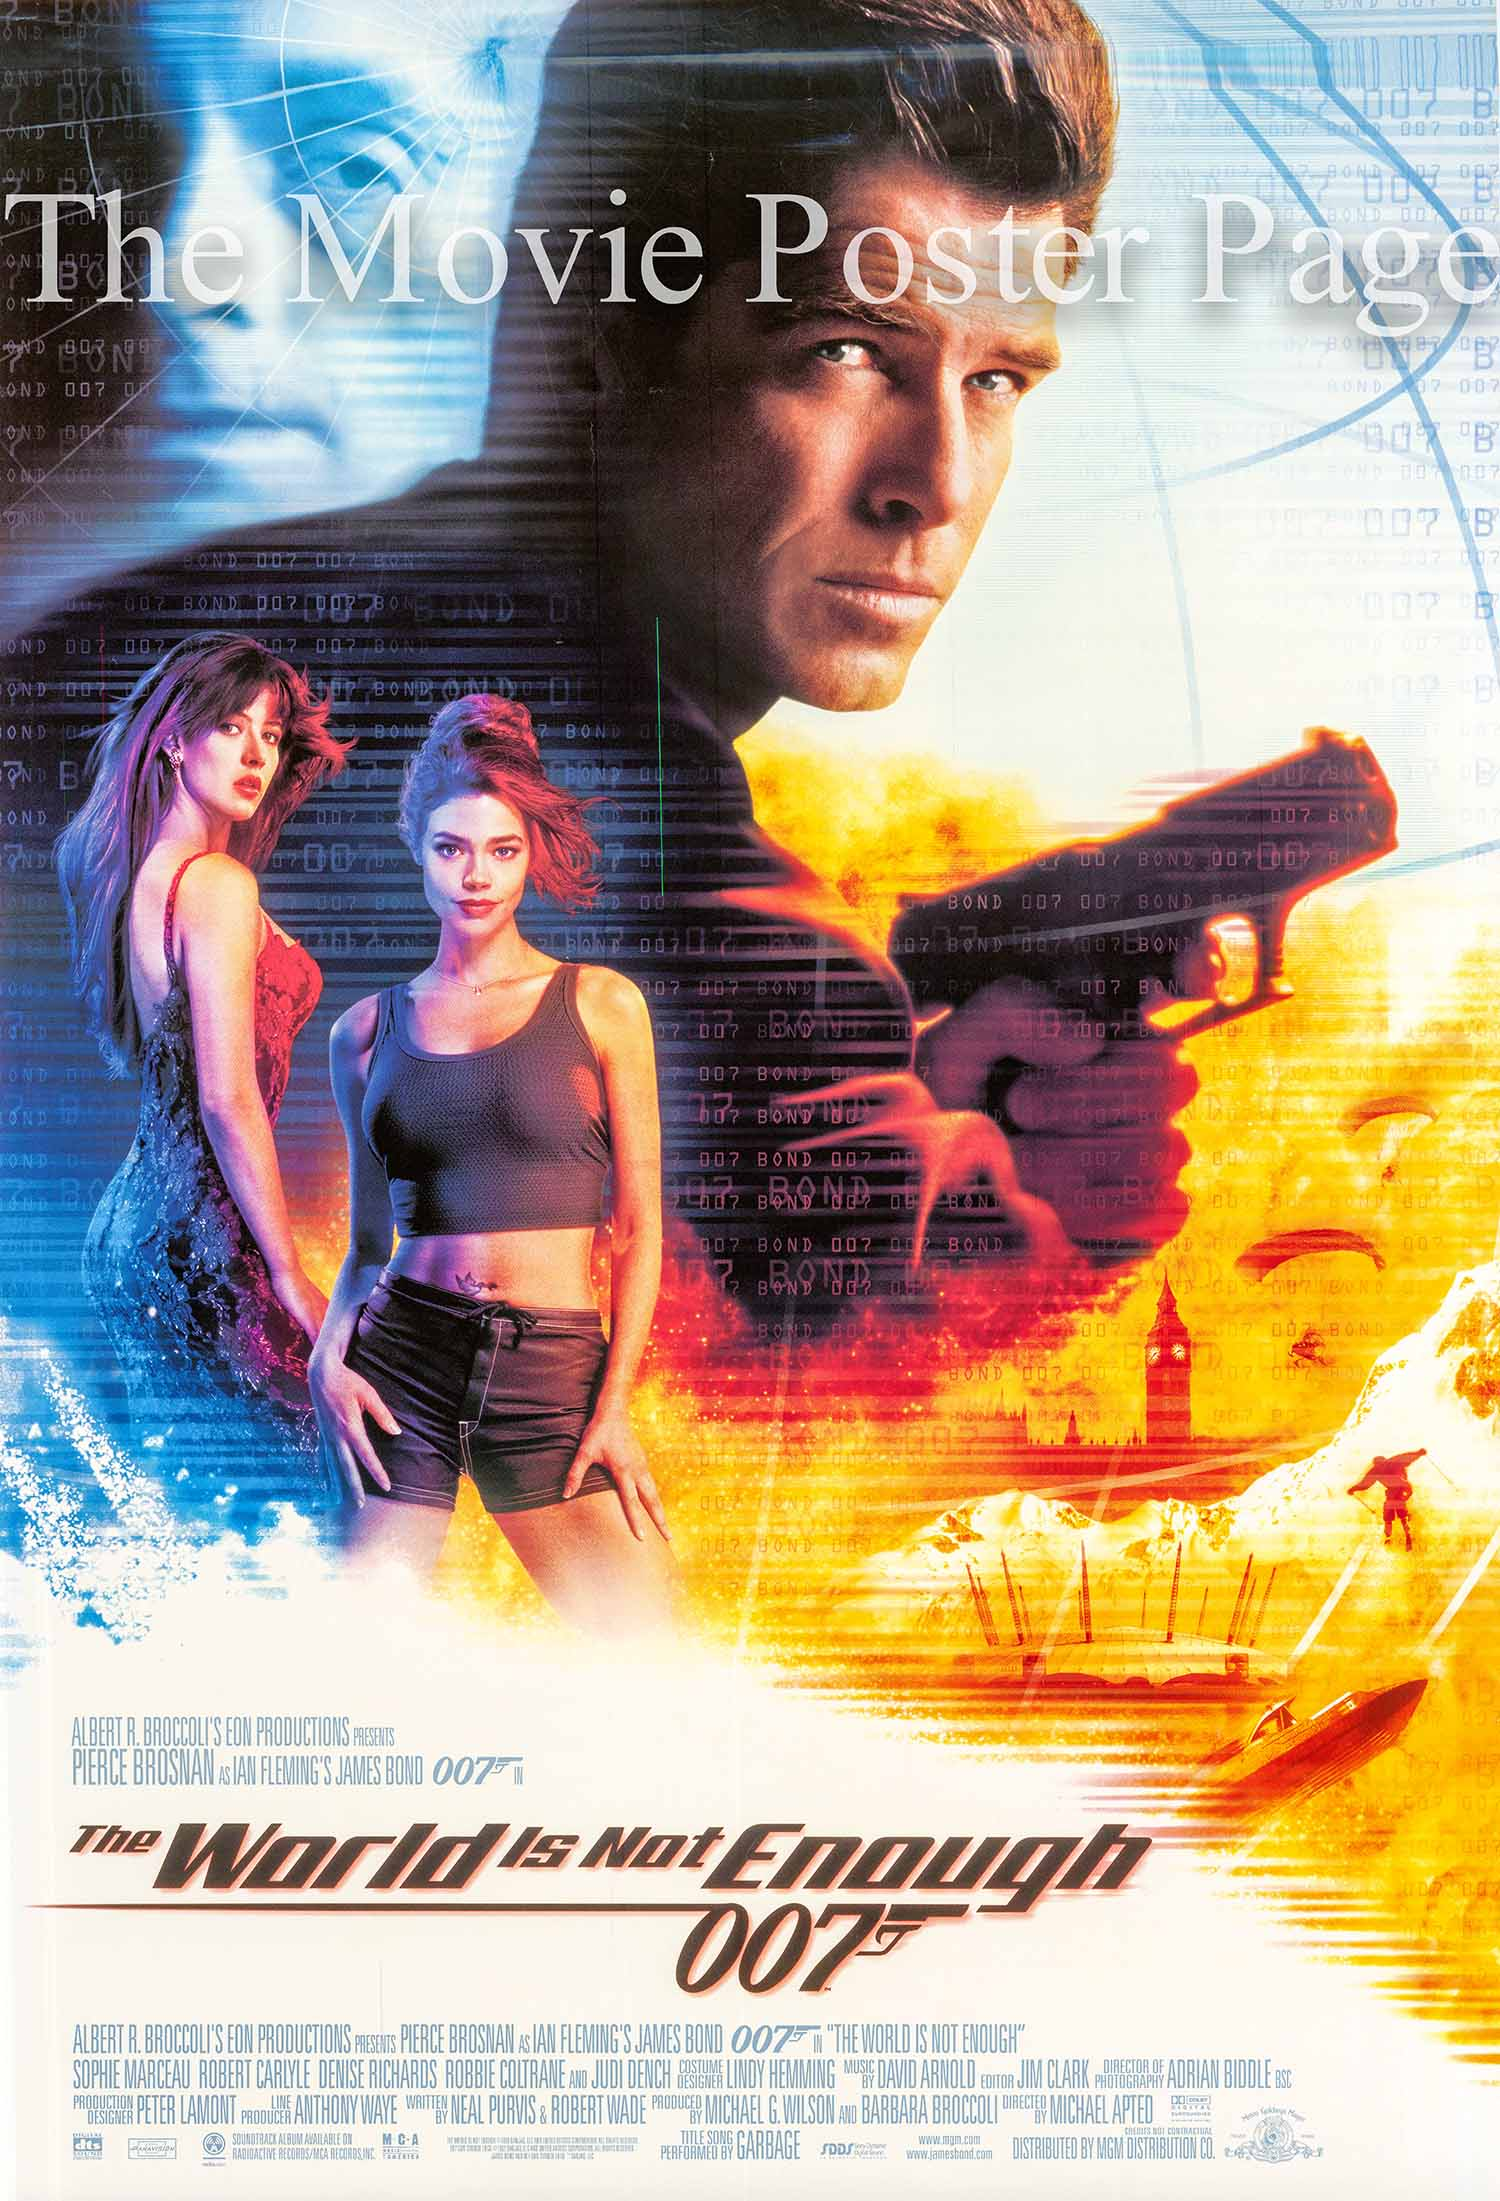 Pictured is a US promotional one-sheet poster for the 2000 Michael Apted film The World Is Not Enough, starring Pierce Brosnan.